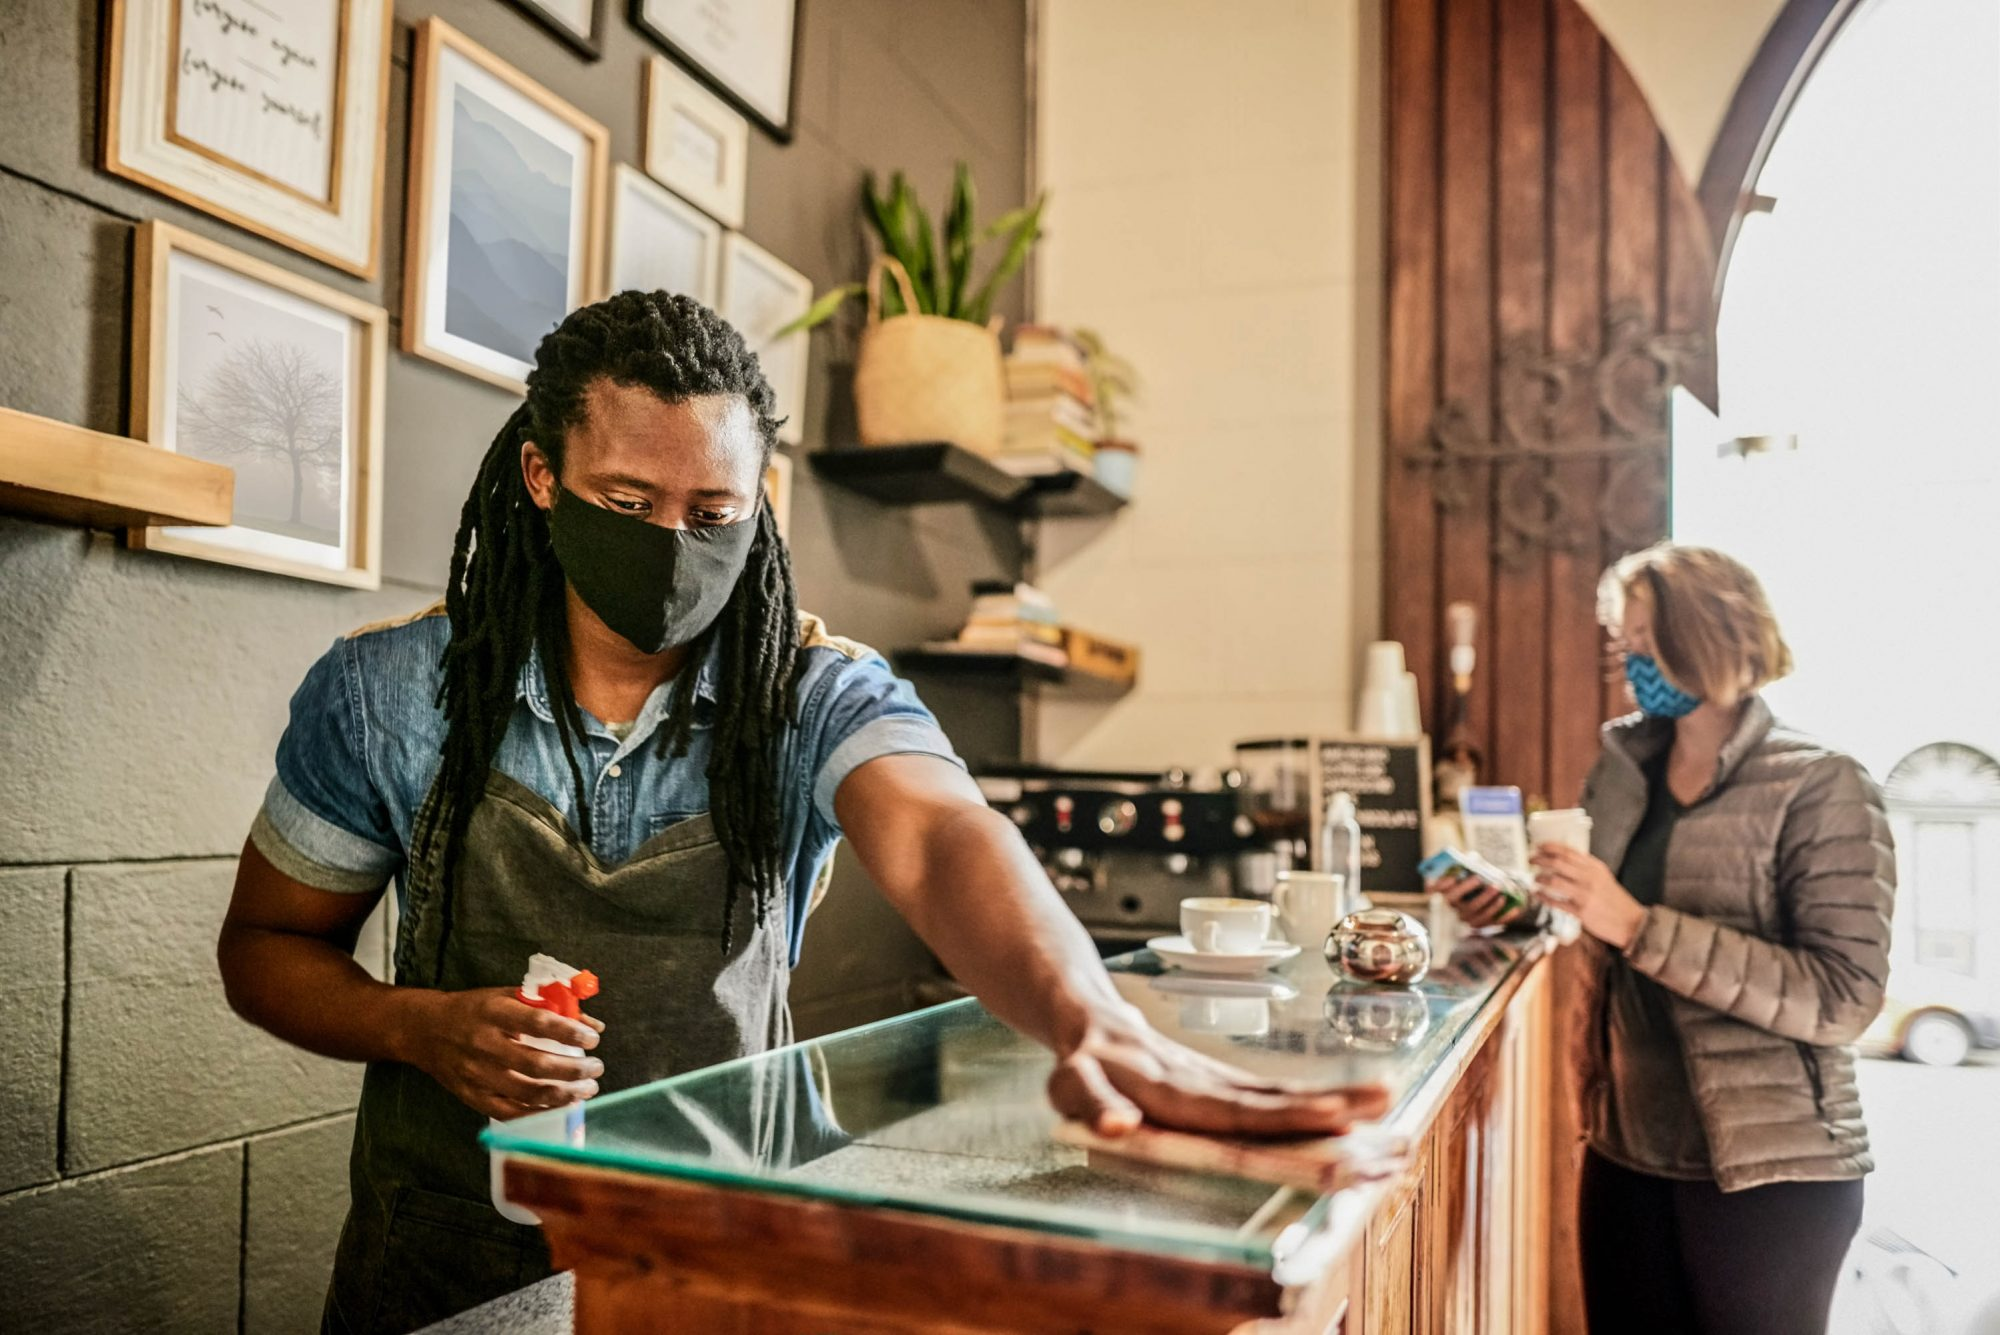 Barista wearing protective face mask cleaning and disinfecting cafe counter with a customer sitting at back